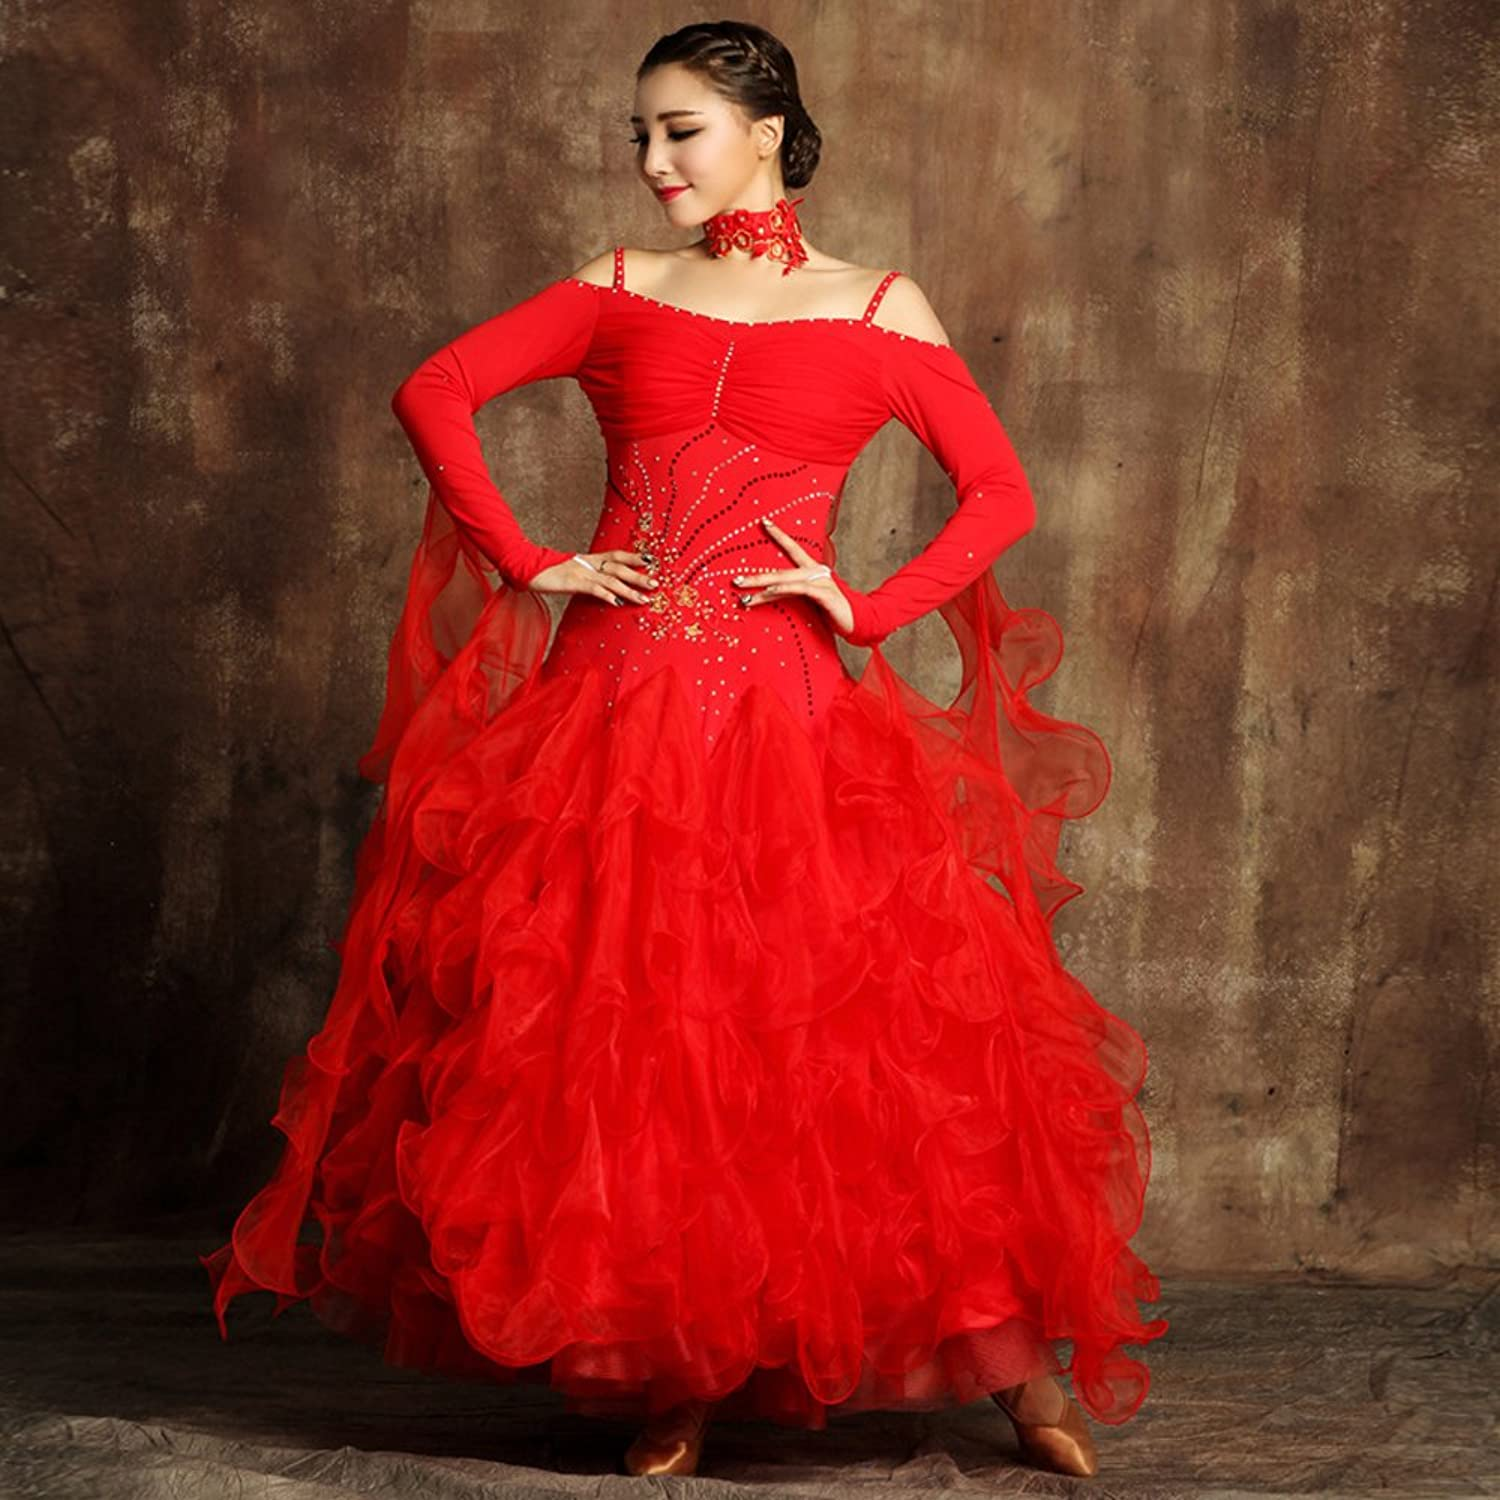 Modern Lady Big Pendulum Modern Dance Dress with Strap Tango and Waltz Dancing Dress Dance Competition Skirt Long Sleeves Rhinestones Dancing Costume